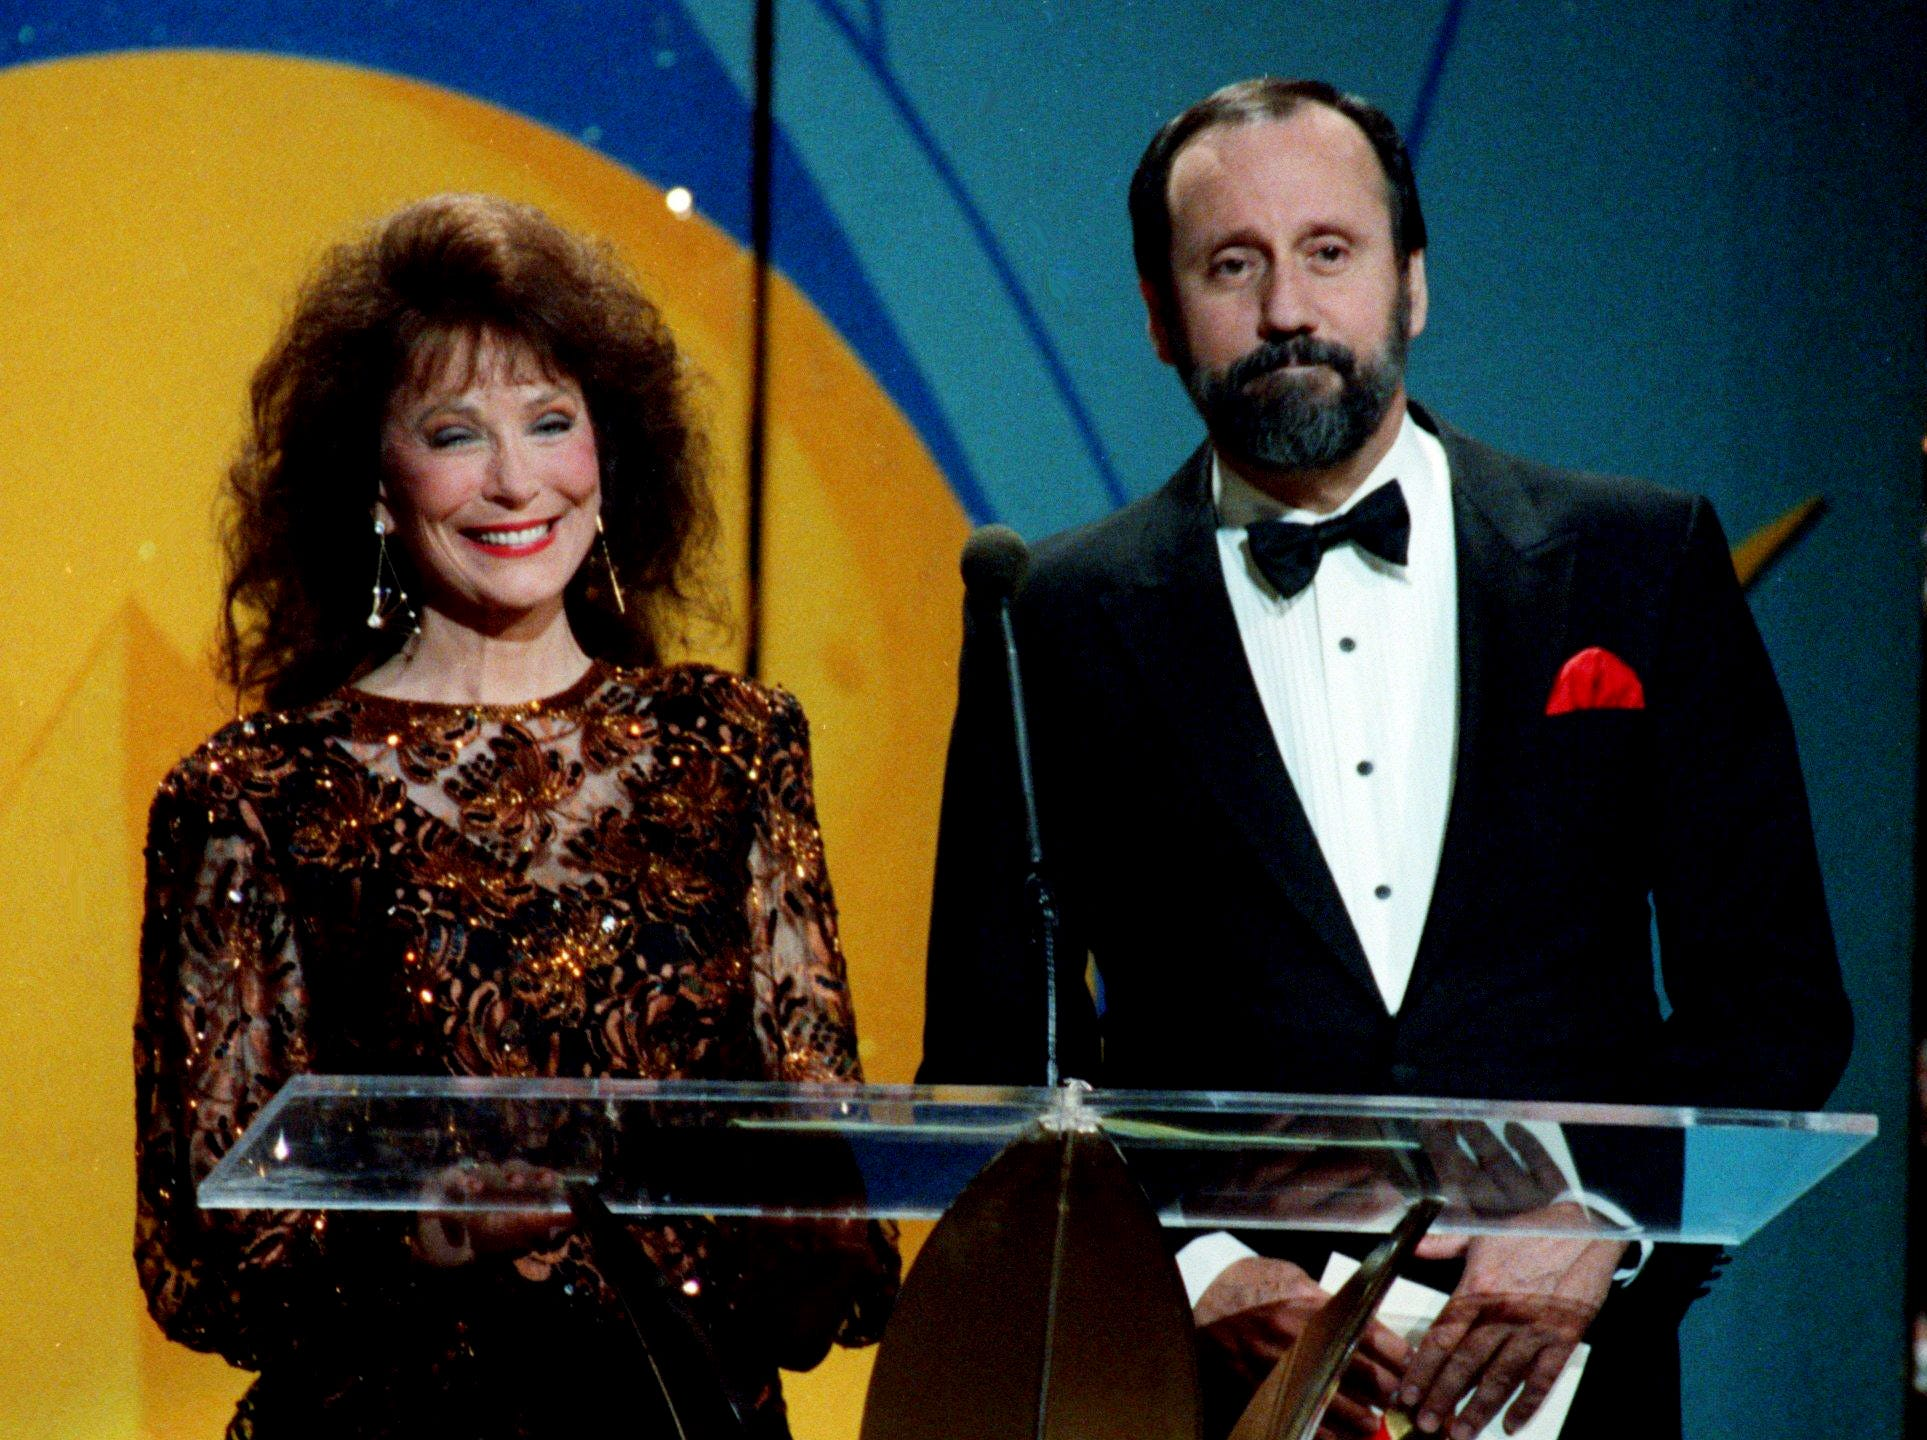 Country music legend Loretta Lynn, left, and comedian Ray Stevens were presenters at the fan-voted TNN/Music City News Country Awards show at the Grand Ole Opry House June 10, 1991. Stevens won his fifth straight Comedian of the Year honor.